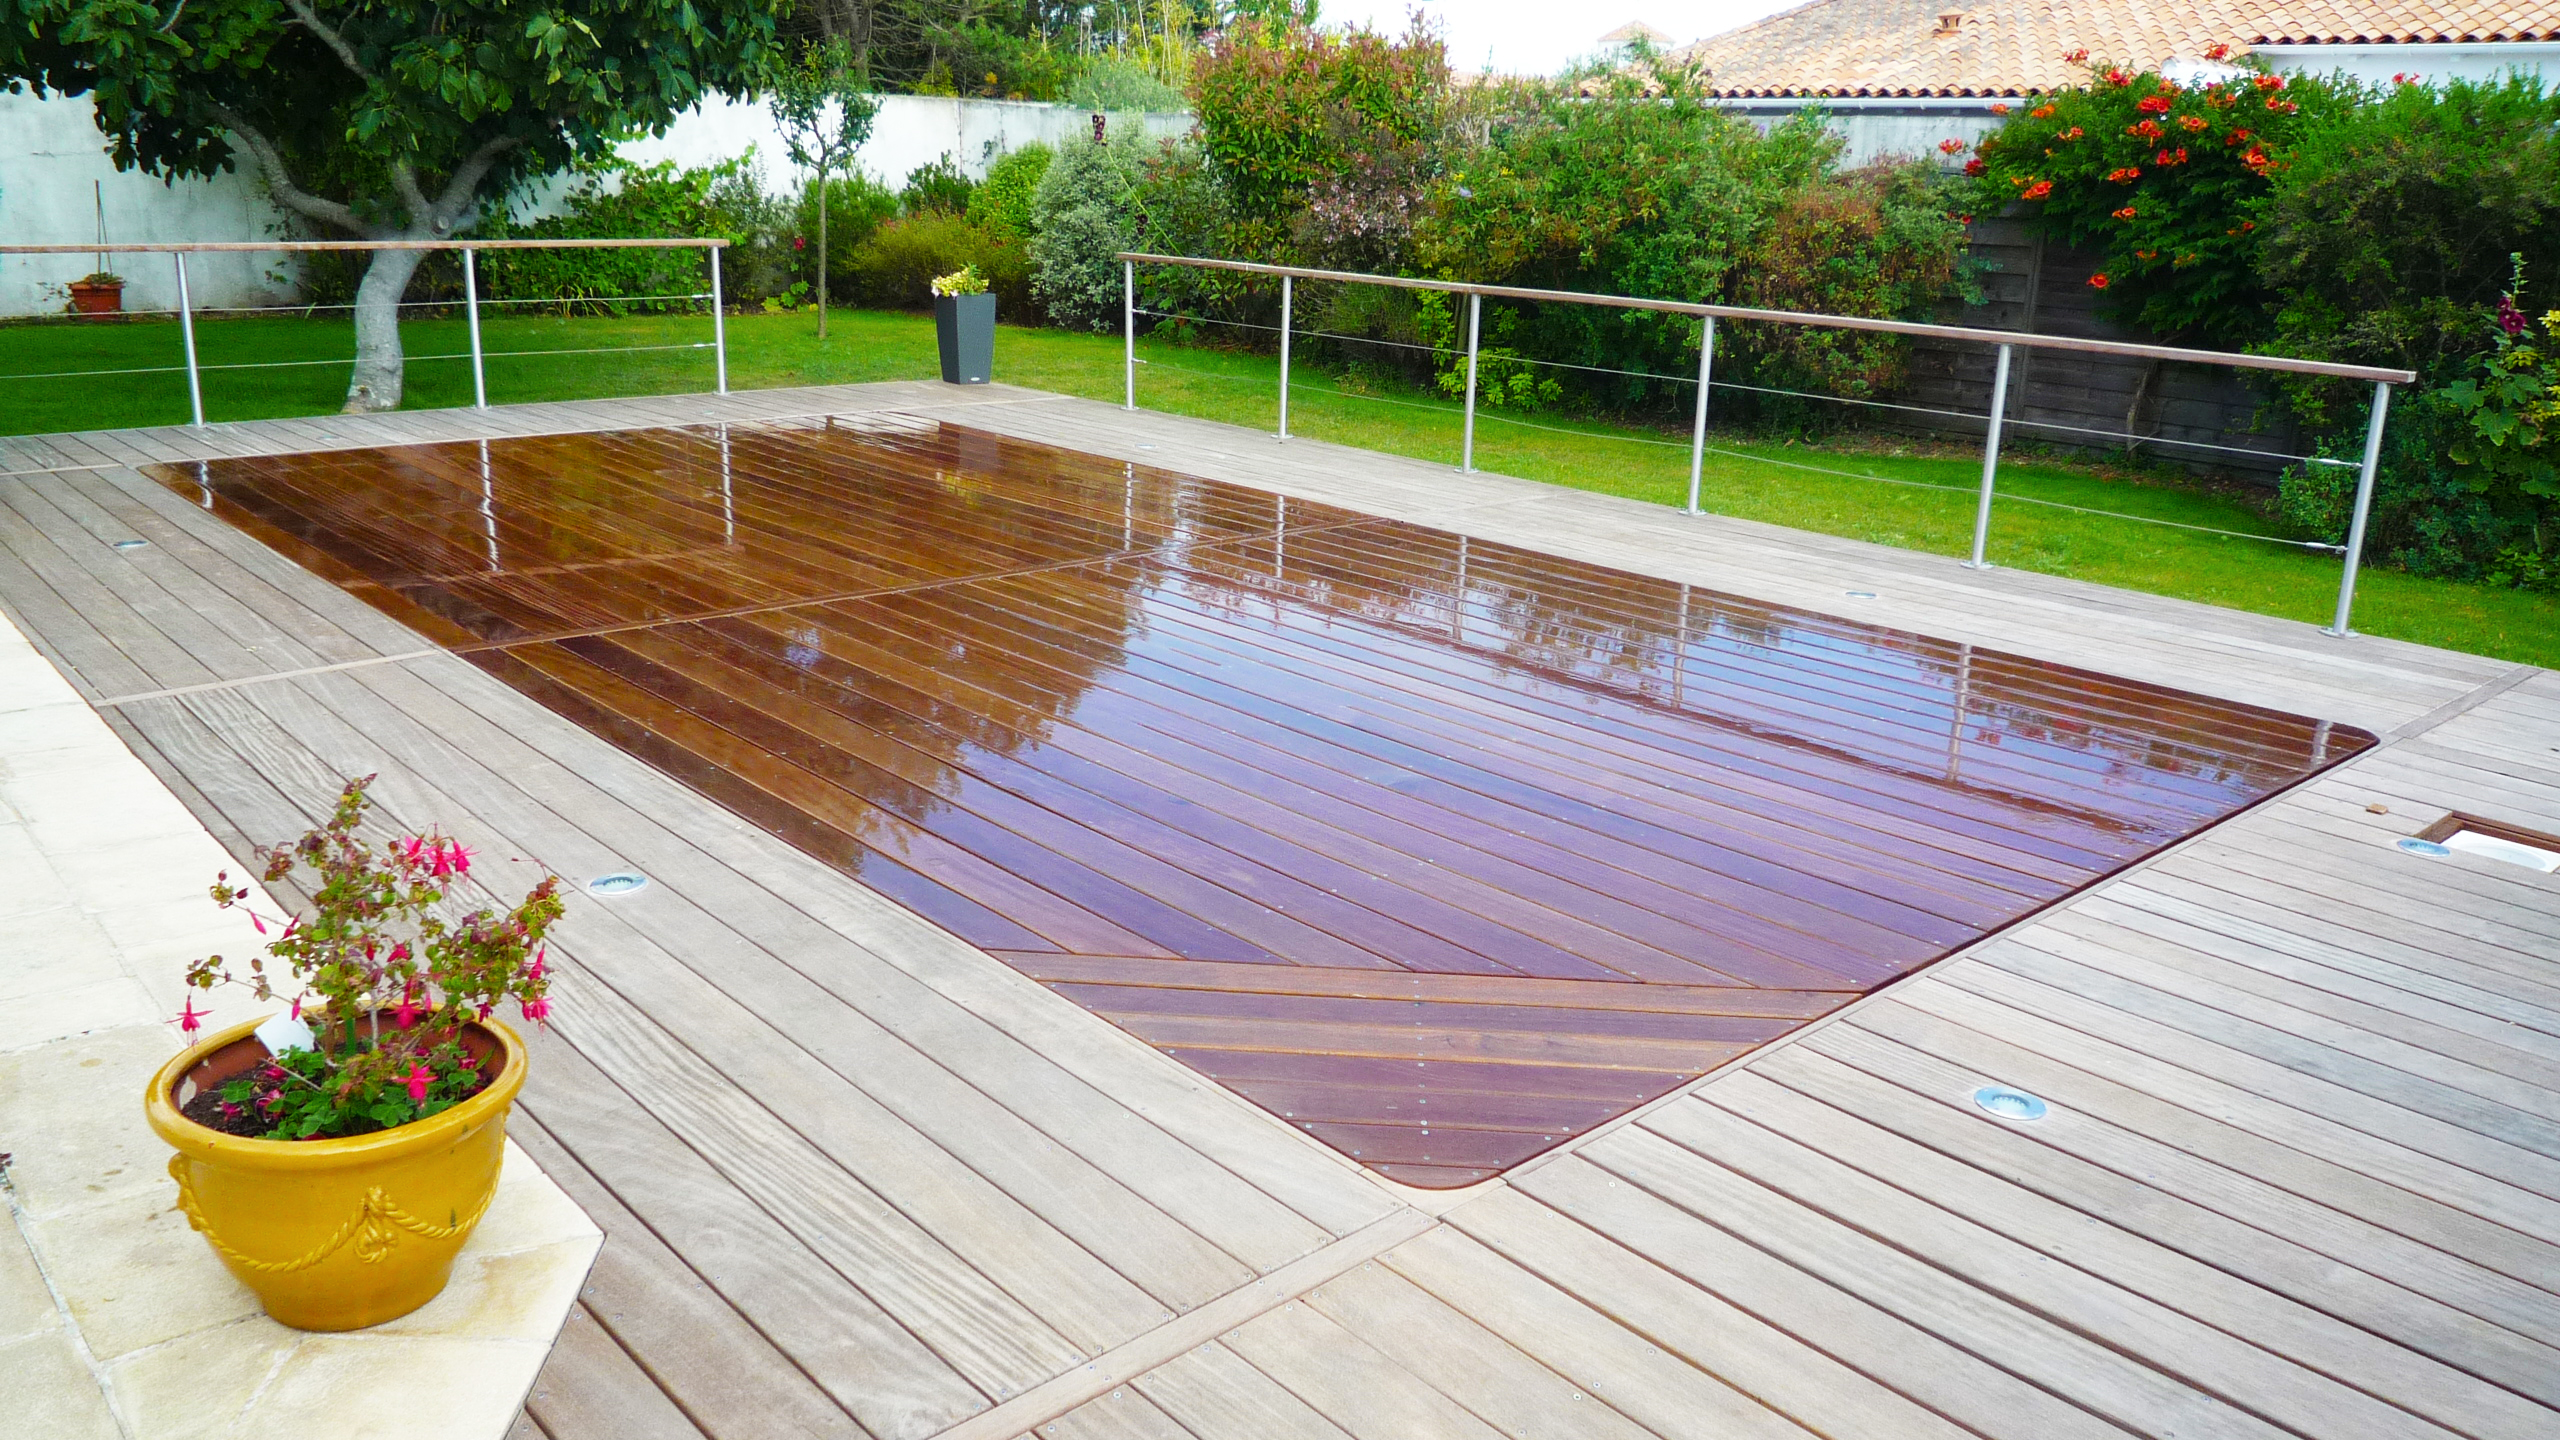 Le plancher mobile transformez votre piscine en terrasse for Piscine fond mobile belgique